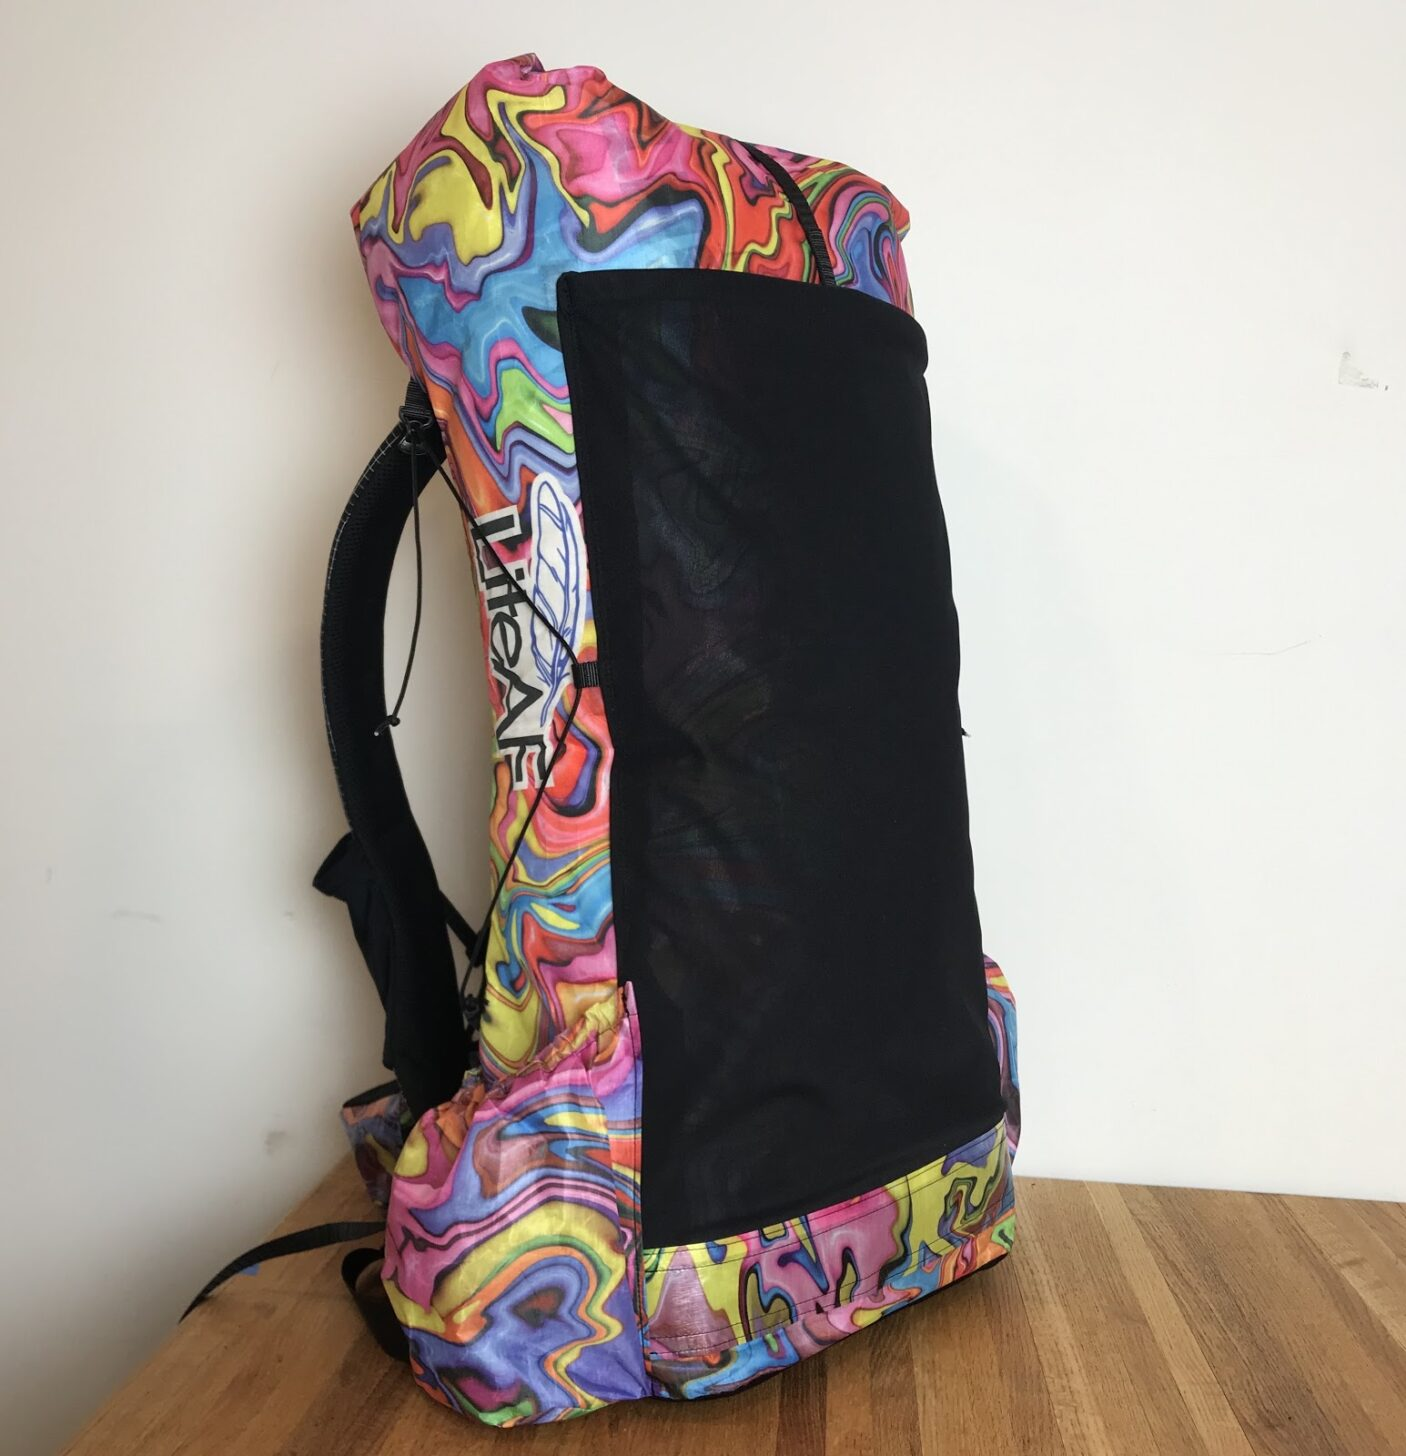 an ultralight pack with colorful swirls